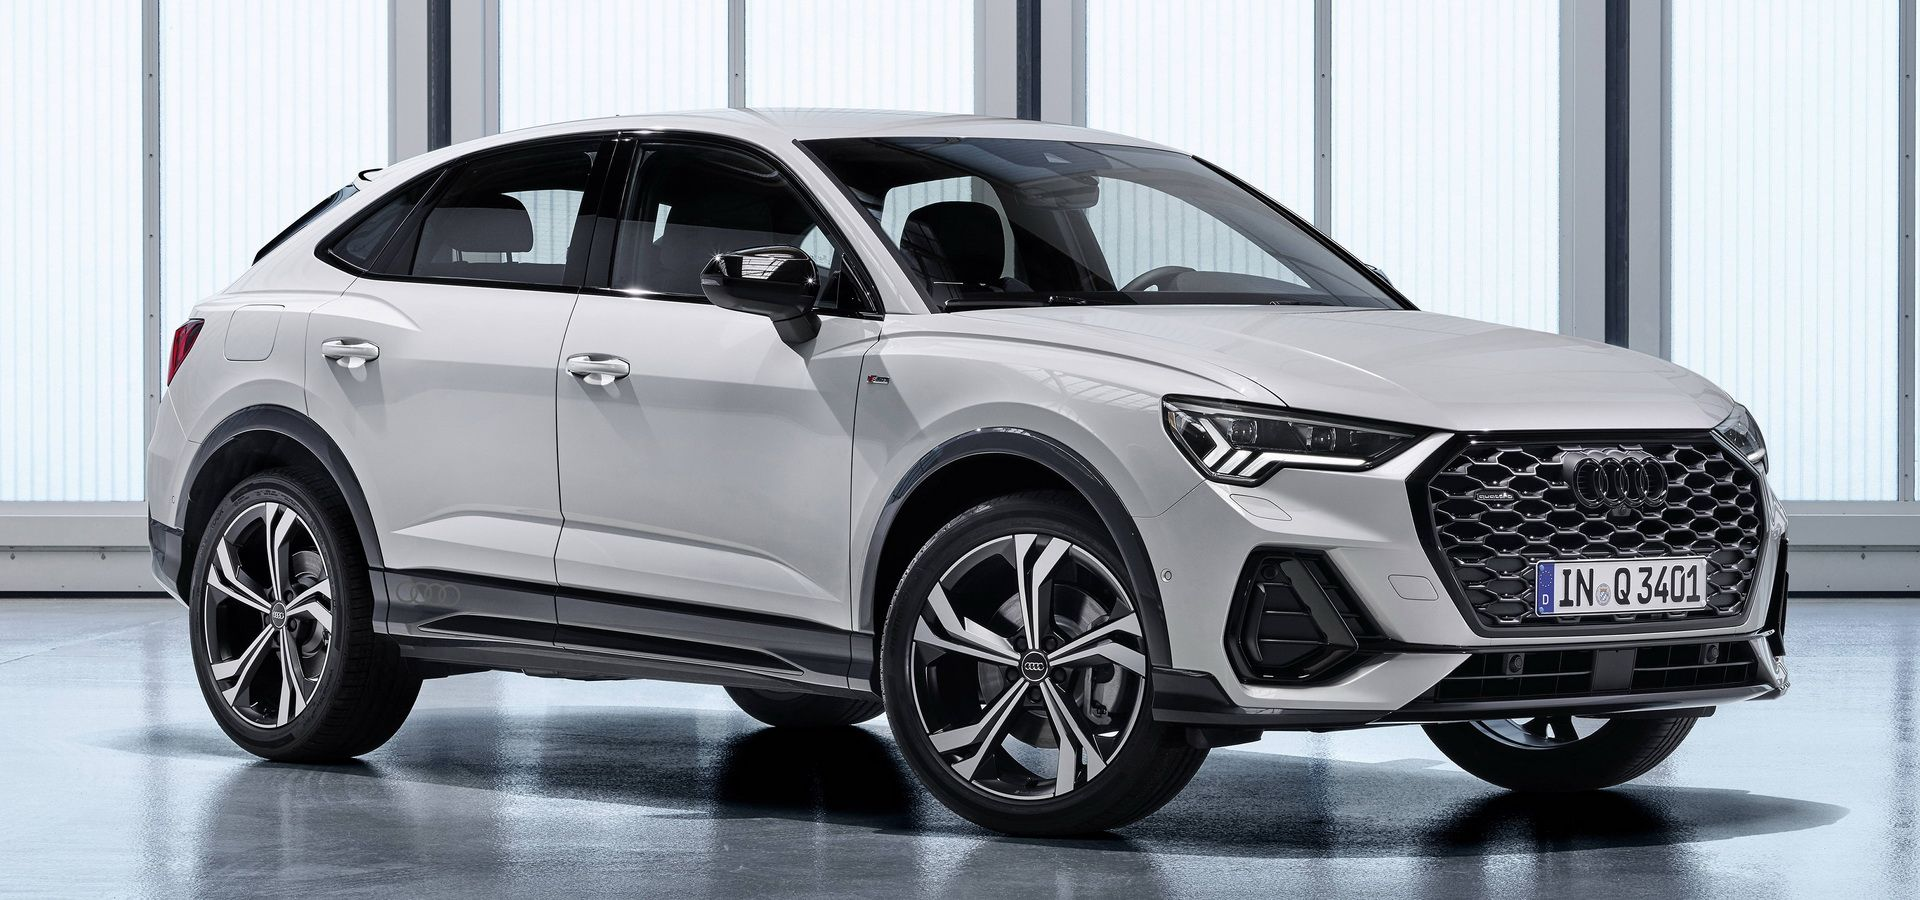 Audi Q3 Sportback Or Bmw X2 We Compare Them You Tell Us Which One You D Go For In 2020 Audi Q3 Audi Audi Cars